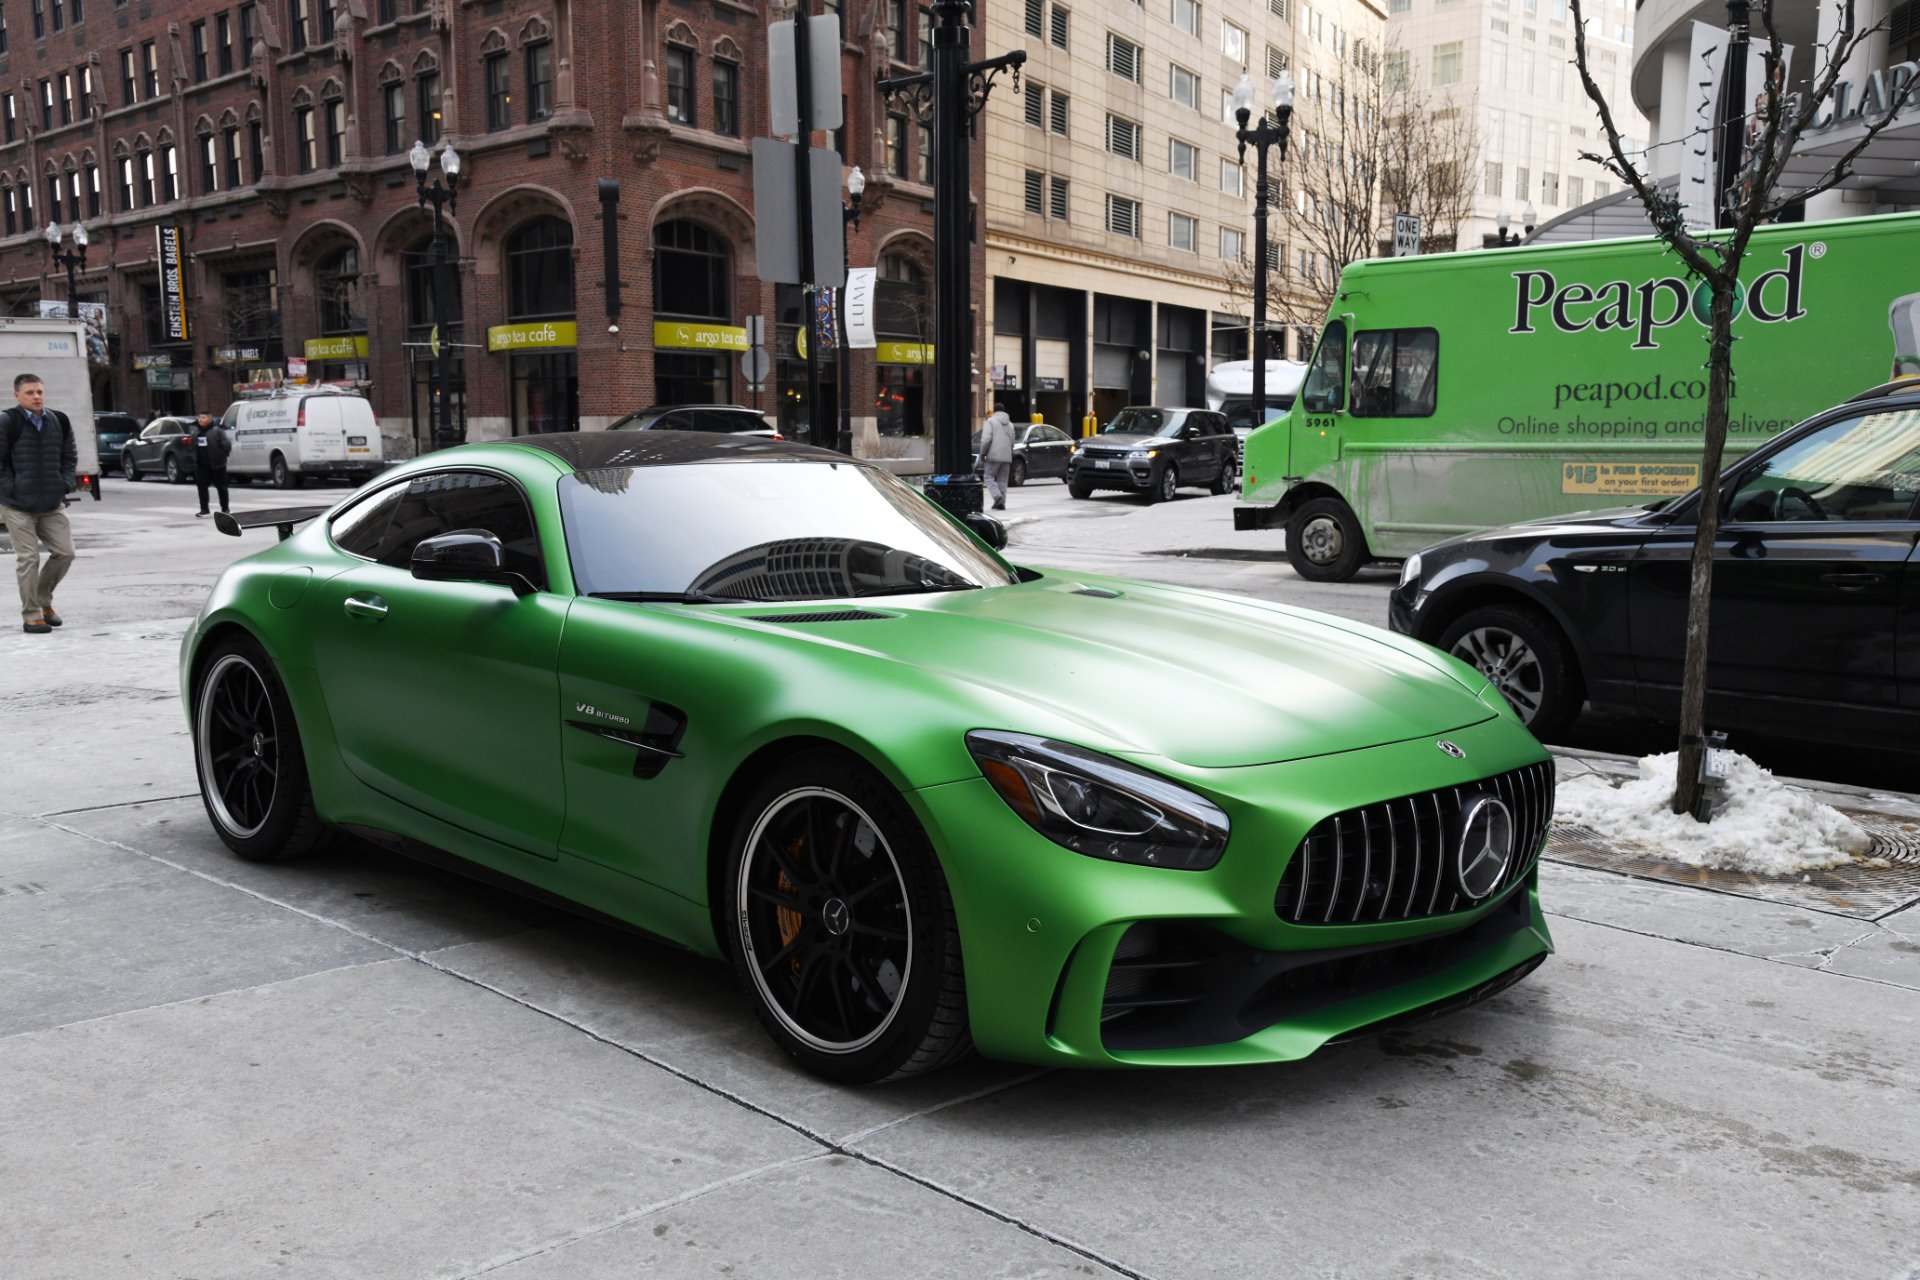 2018 mercedes benz amg gt r stock r493a for sale near chicago il il mercedes benz dealer. Black Bedroom Furniture Sets. Home Design Ideas